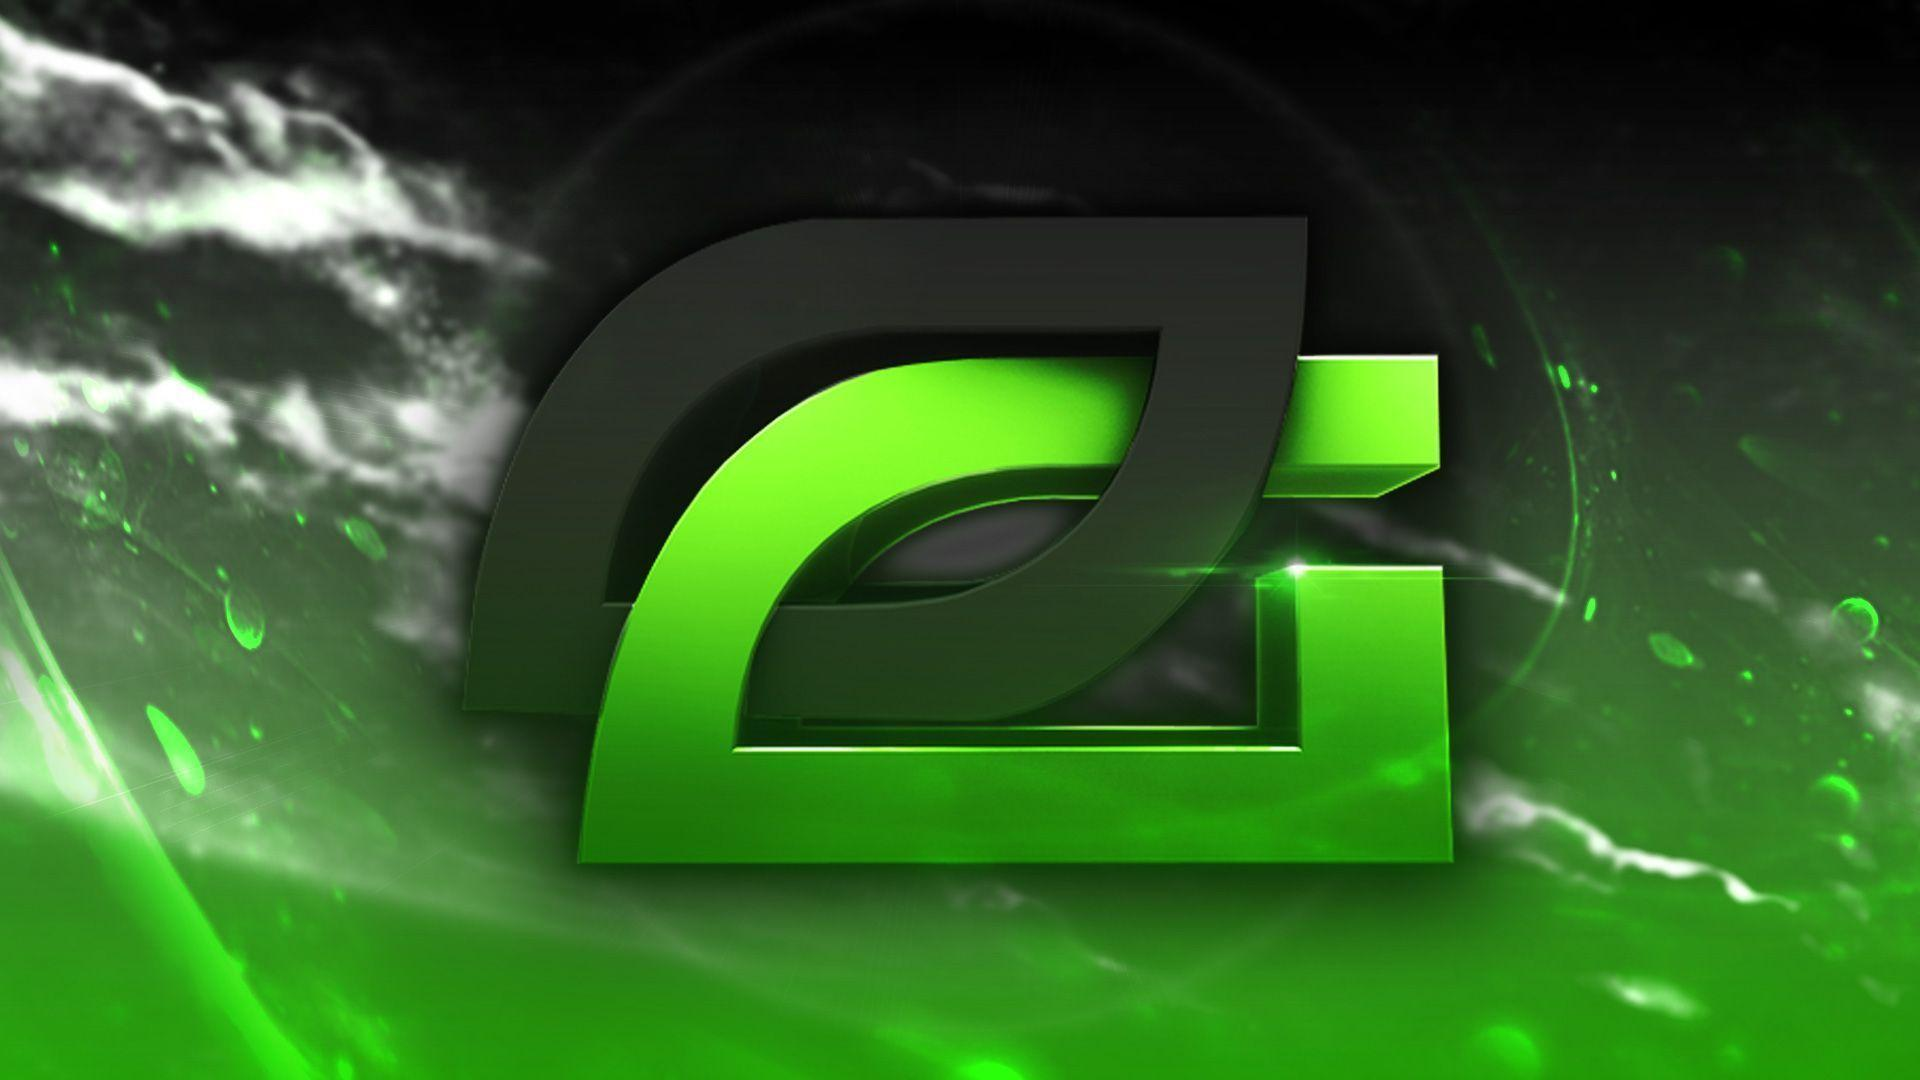 OpTic Gaming Wallpapers 2016 - Wallpaper Cave